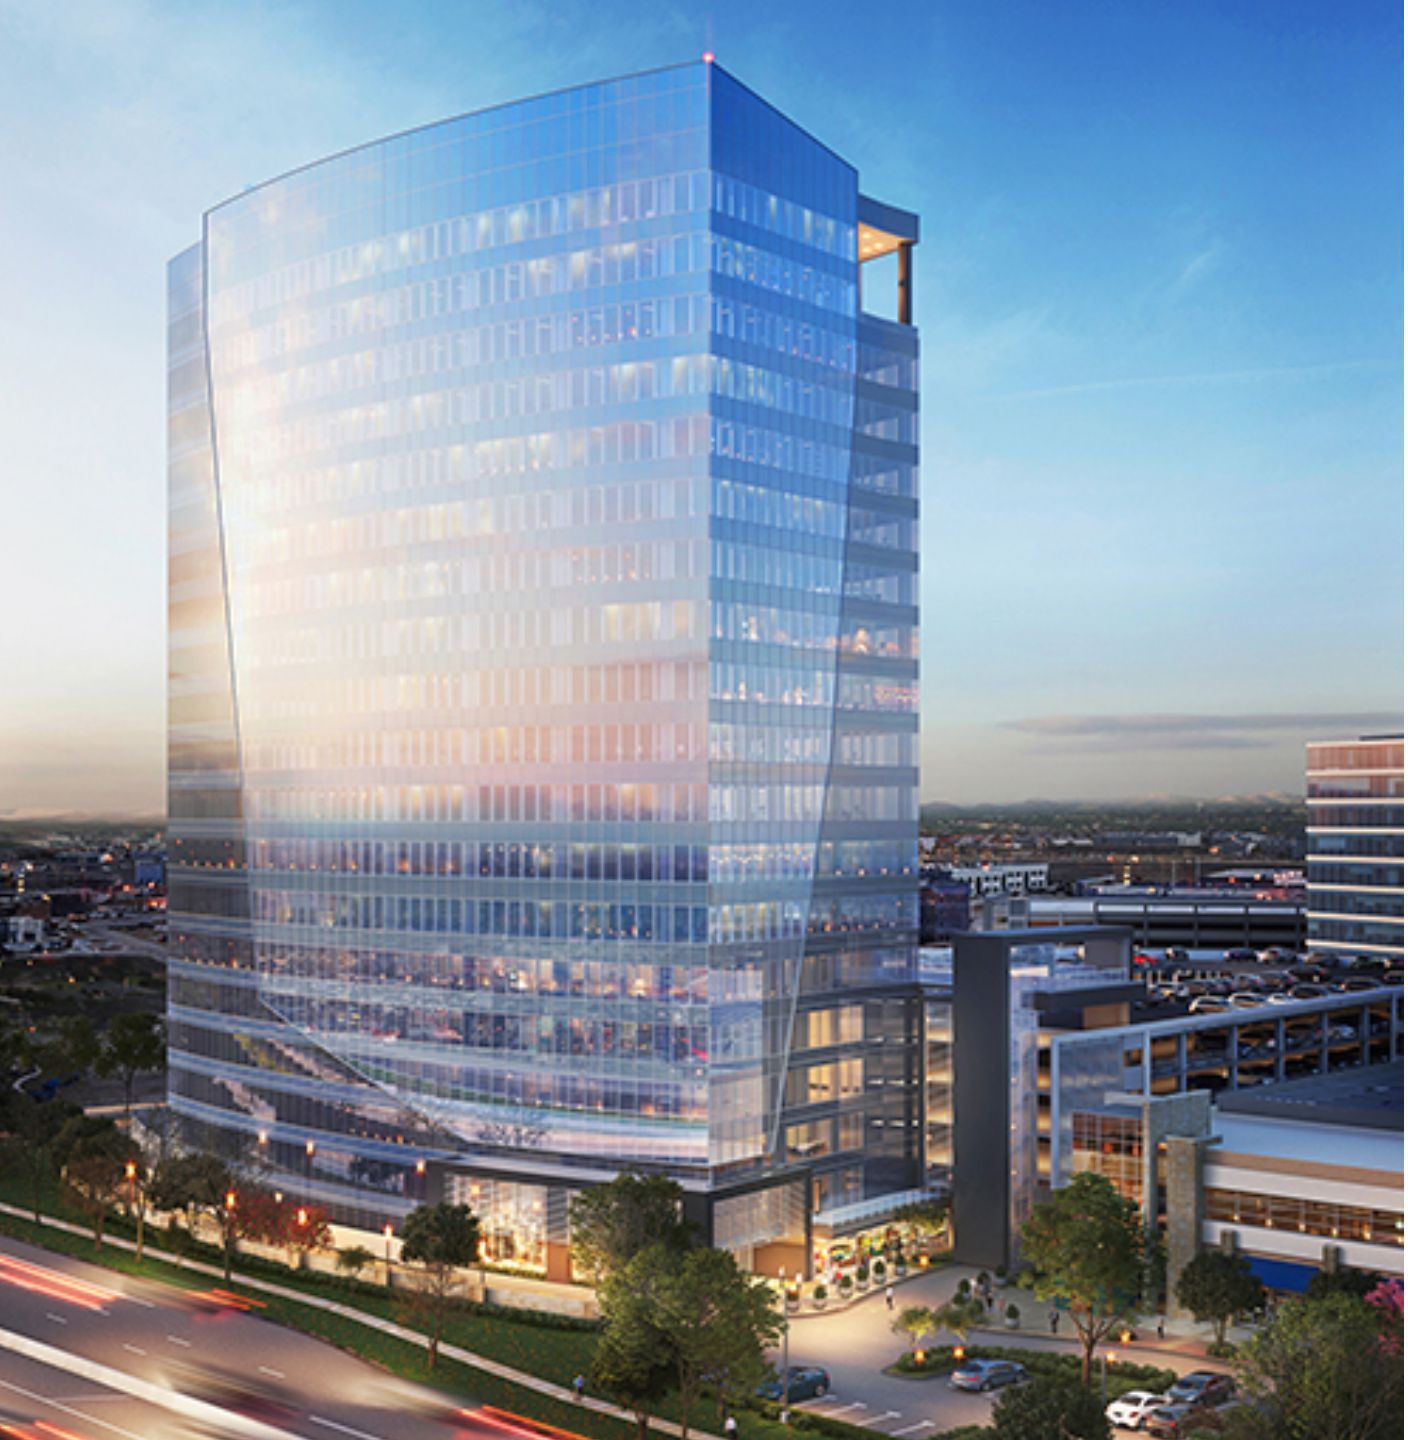 The 18-story Granite Park Six would be the tallest office tower yet in Granite Properties' mixed-use project at S.H. 121 and the Dallas North Tollway.